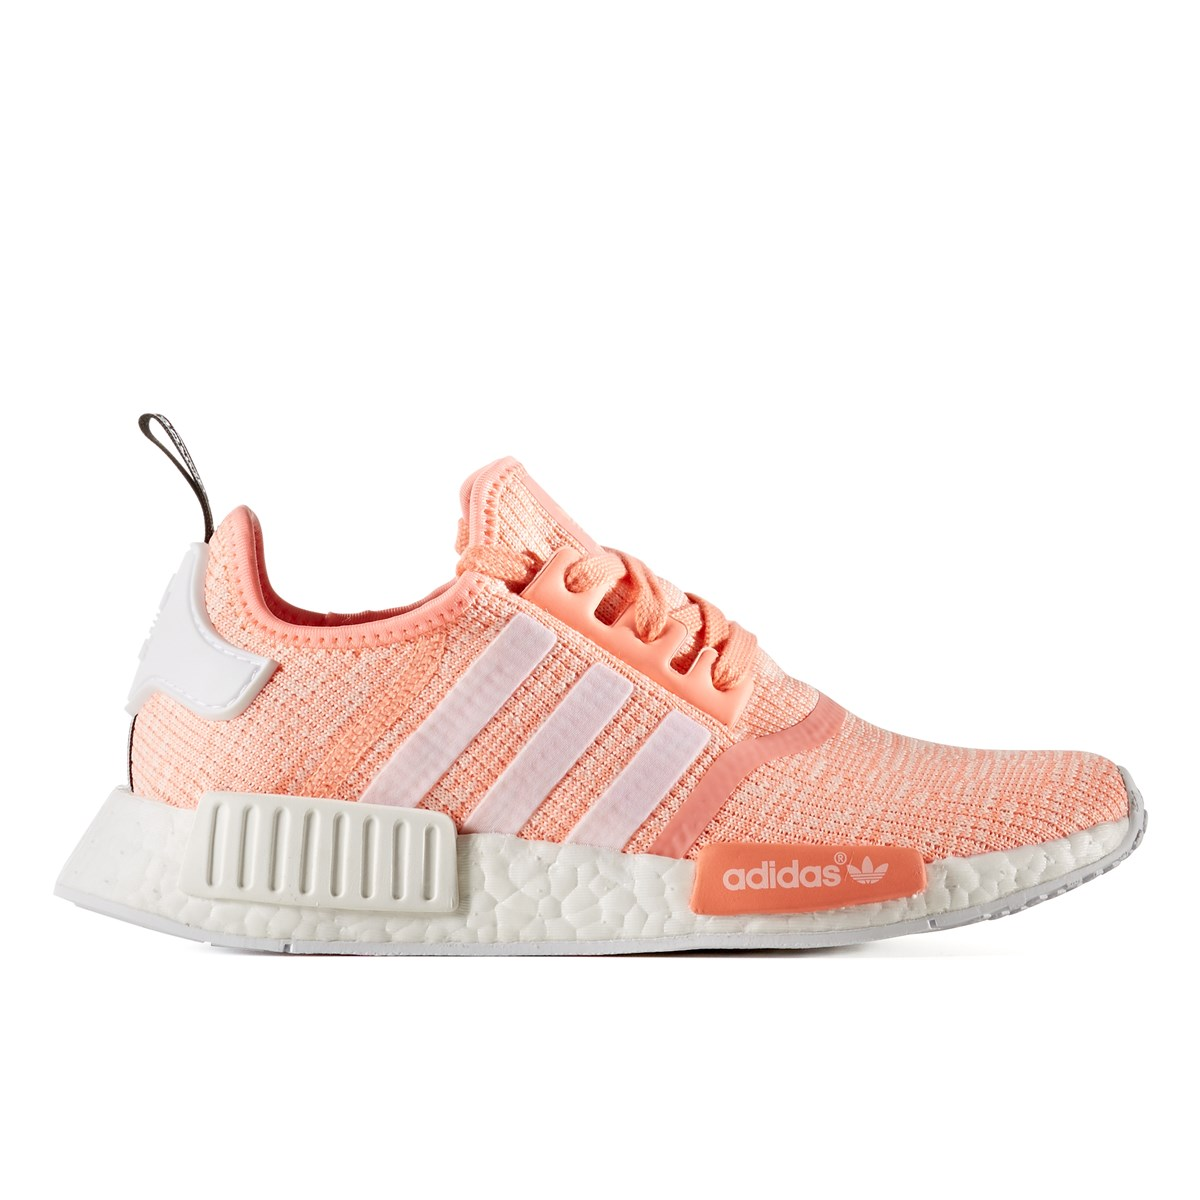 women 39 s nmd r1 pink sneakers little burgundy. Black Bedroom Furniture Sets. Home Design Ideas